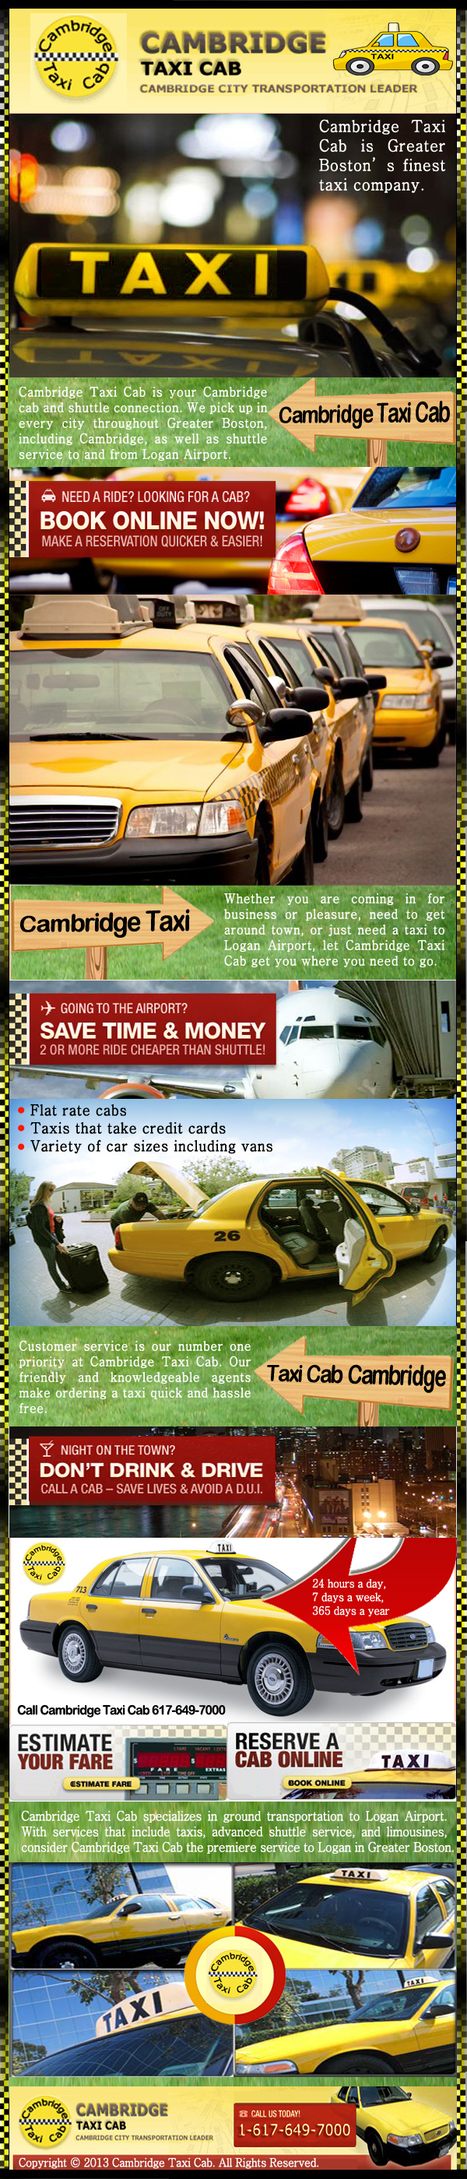 Cambridge Taxi Cab | Cambridge Taxi Cab | Scoop.it